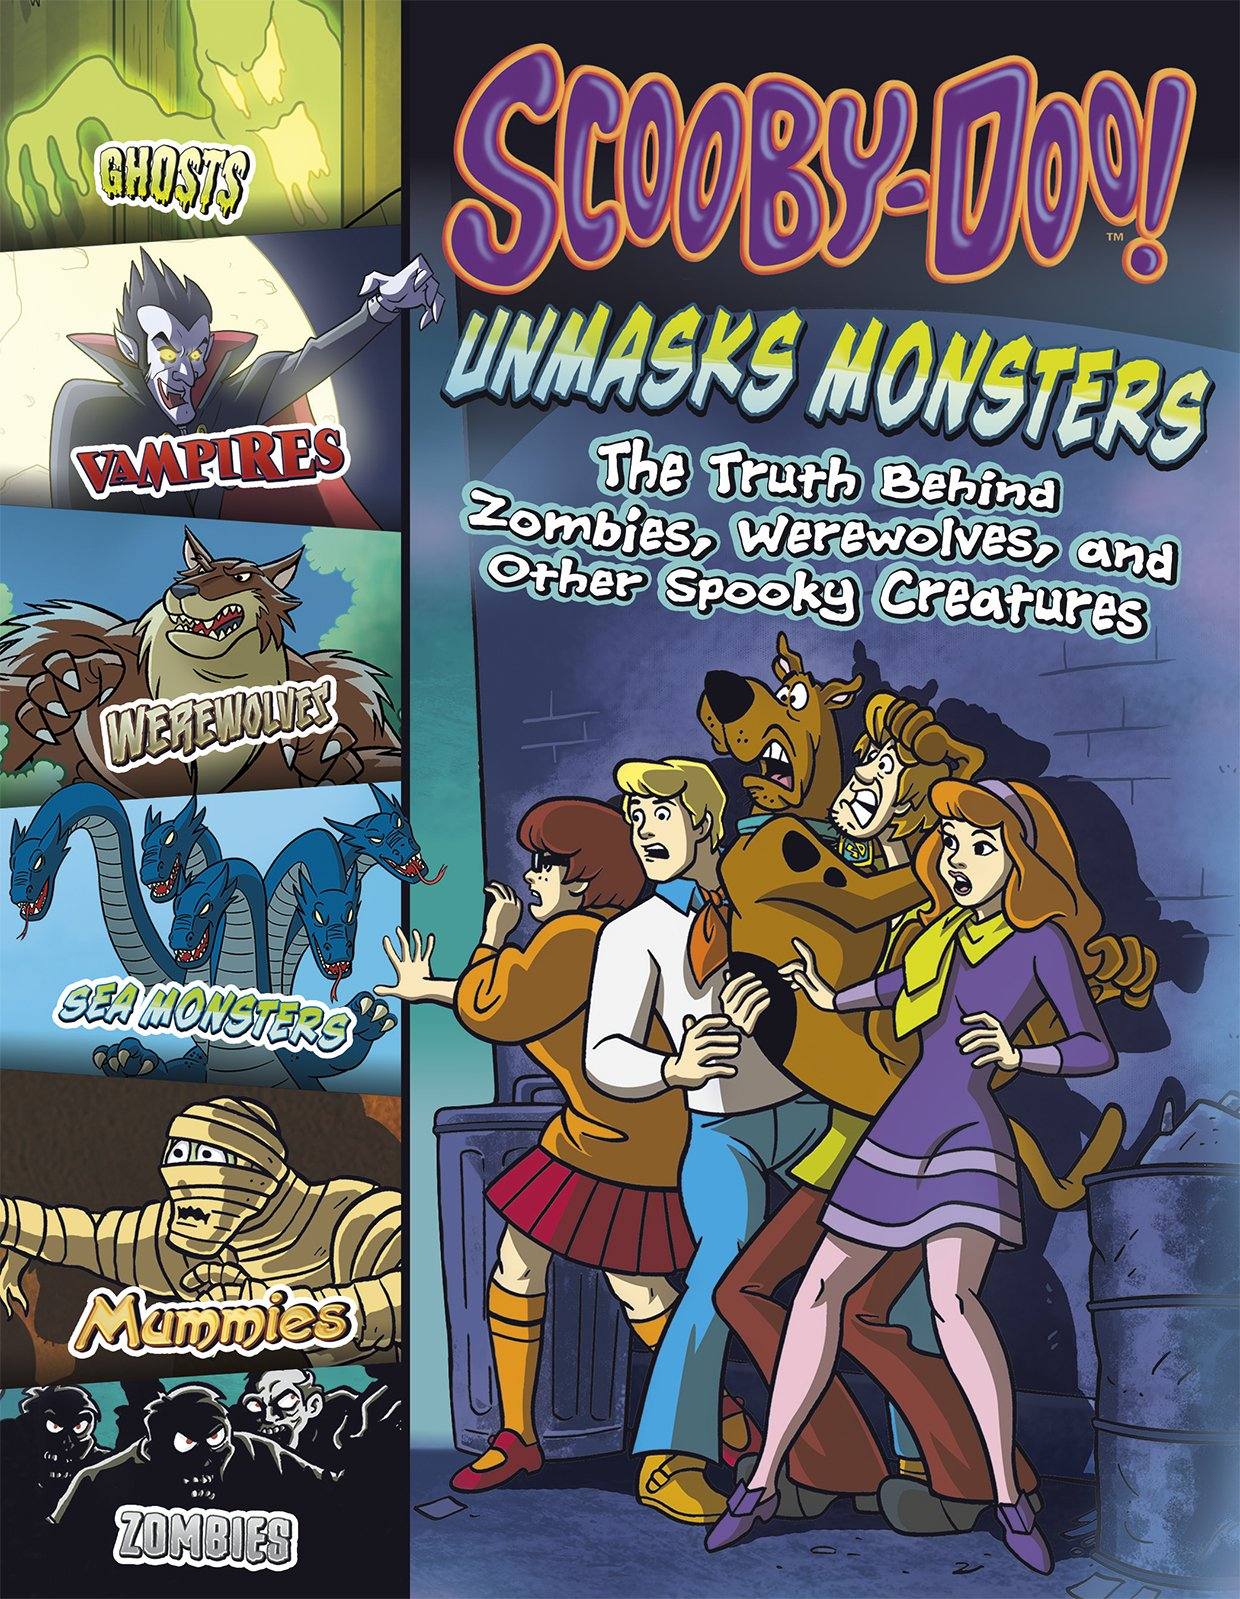 Download Scooby-Doo! Unmasks Monsters: The Truth Behind Zombies, Werewolves, and Other Spooky Creatures ebook